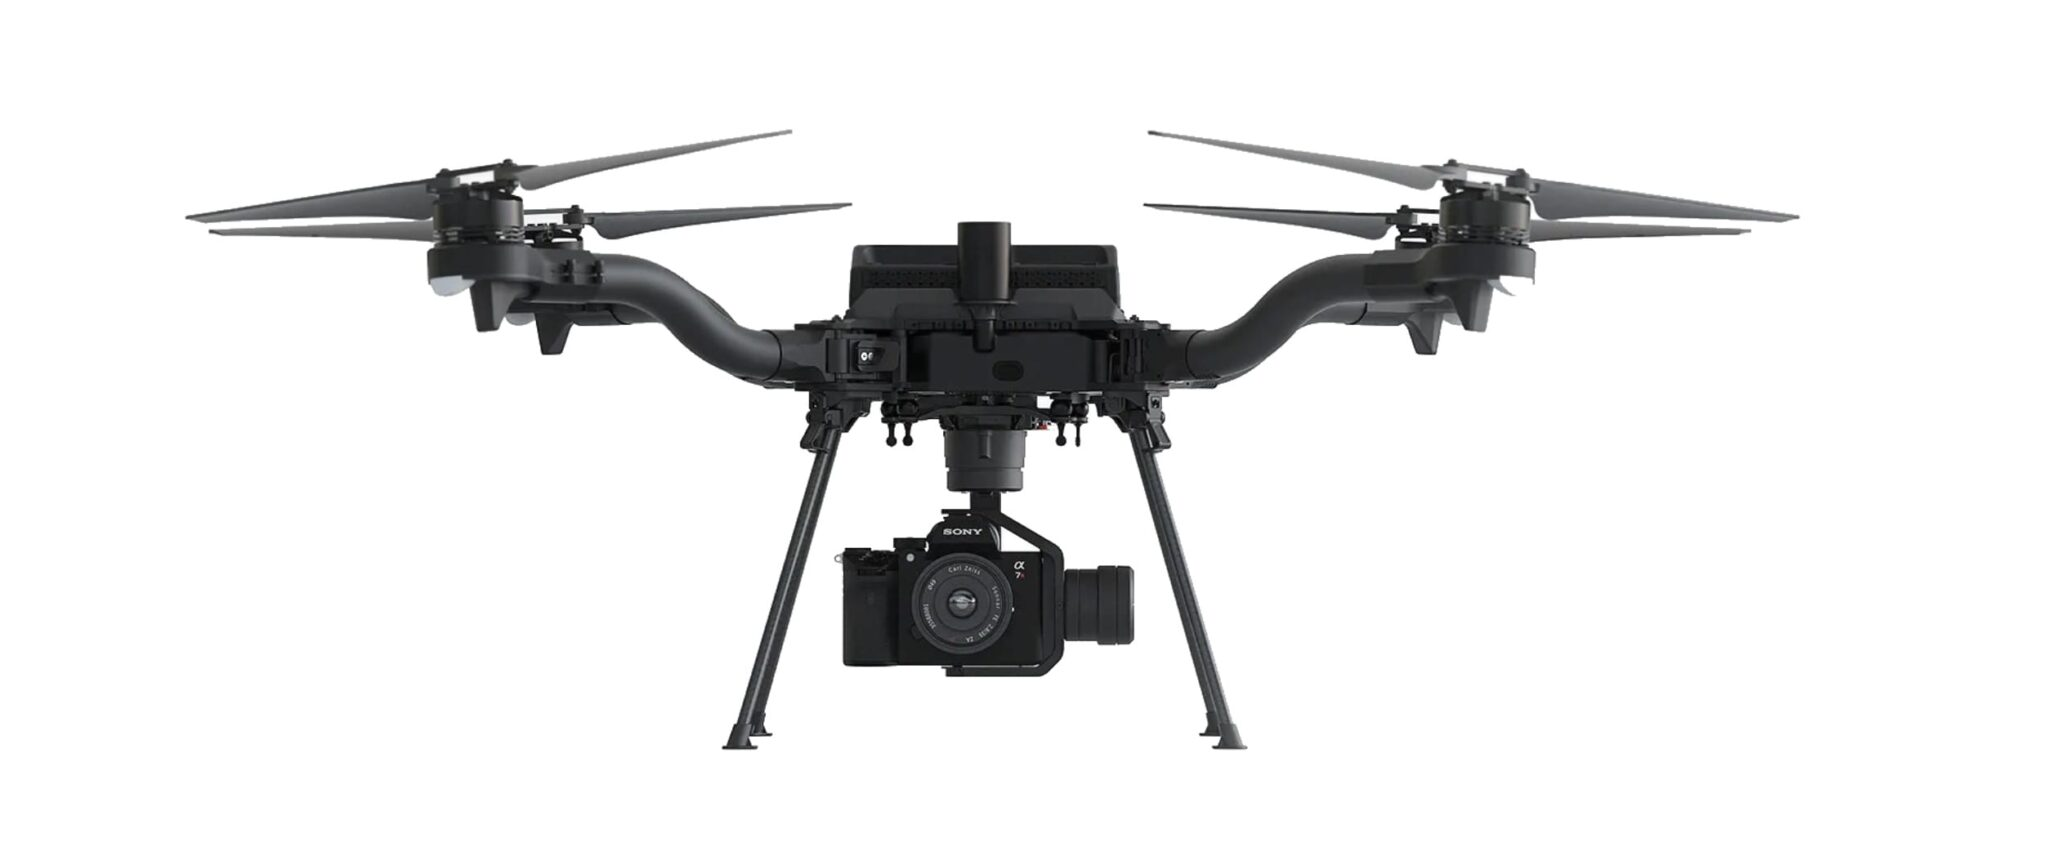 Freefly and Auterion announce the release of the Astro drone